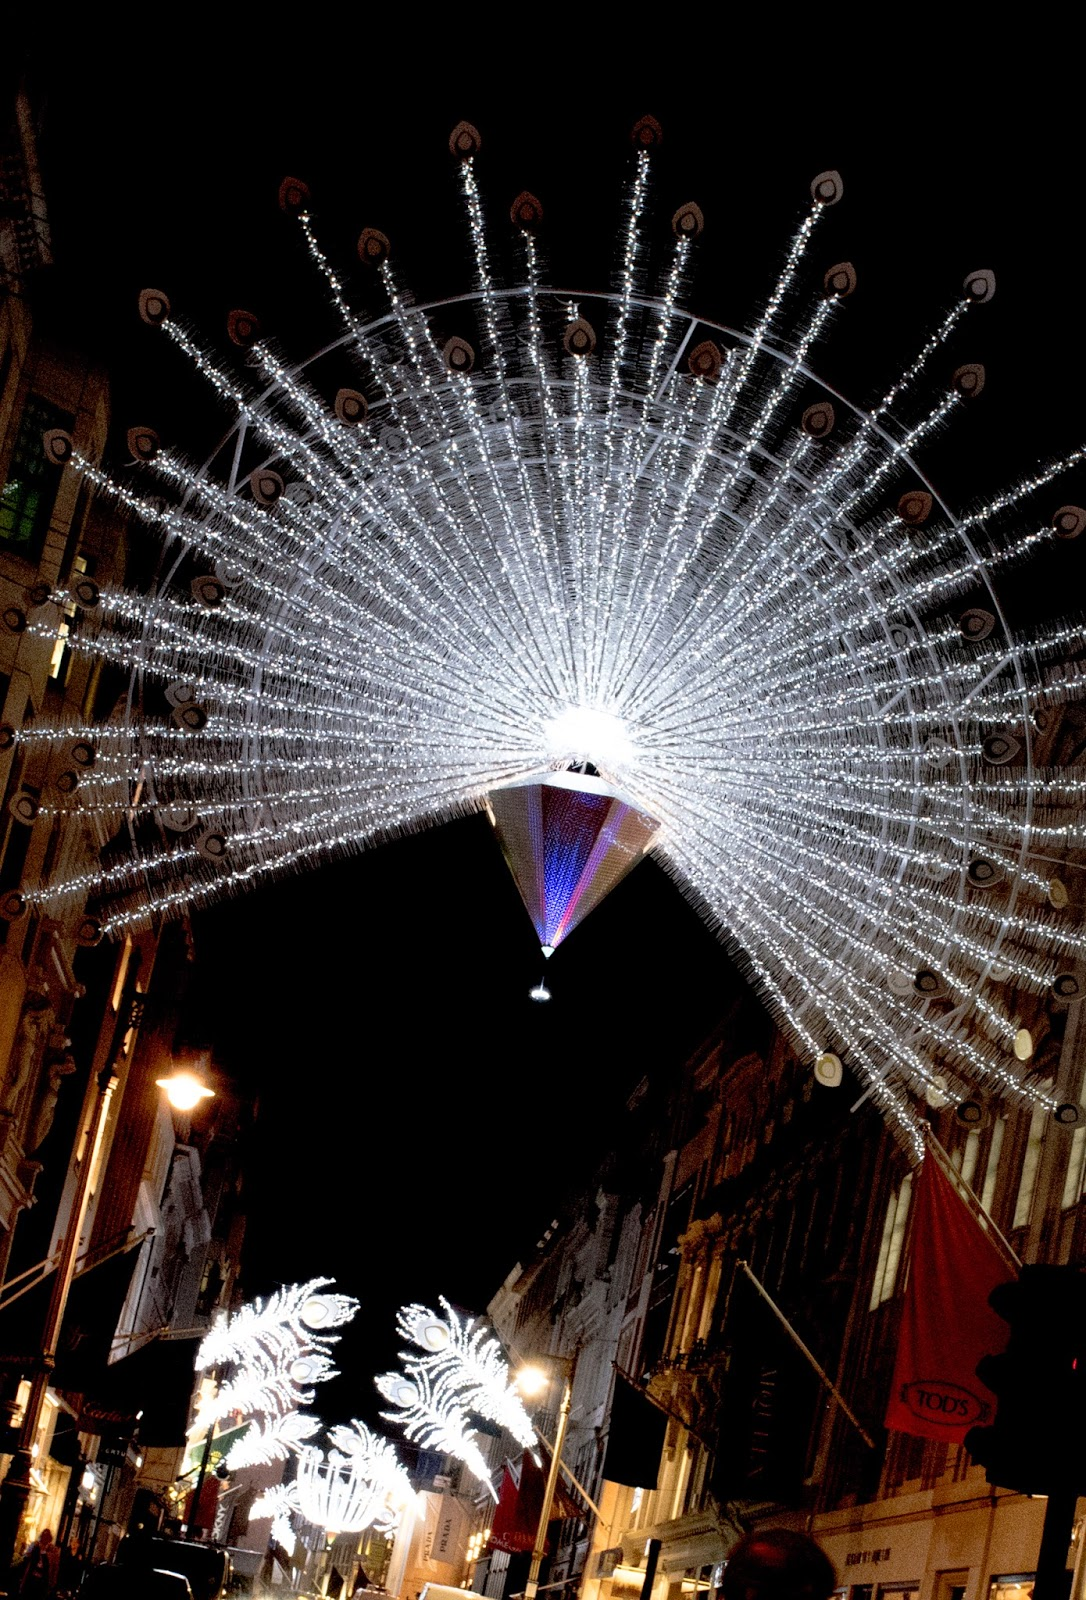 Bond Street in London. 2014 Christmas Illuminations